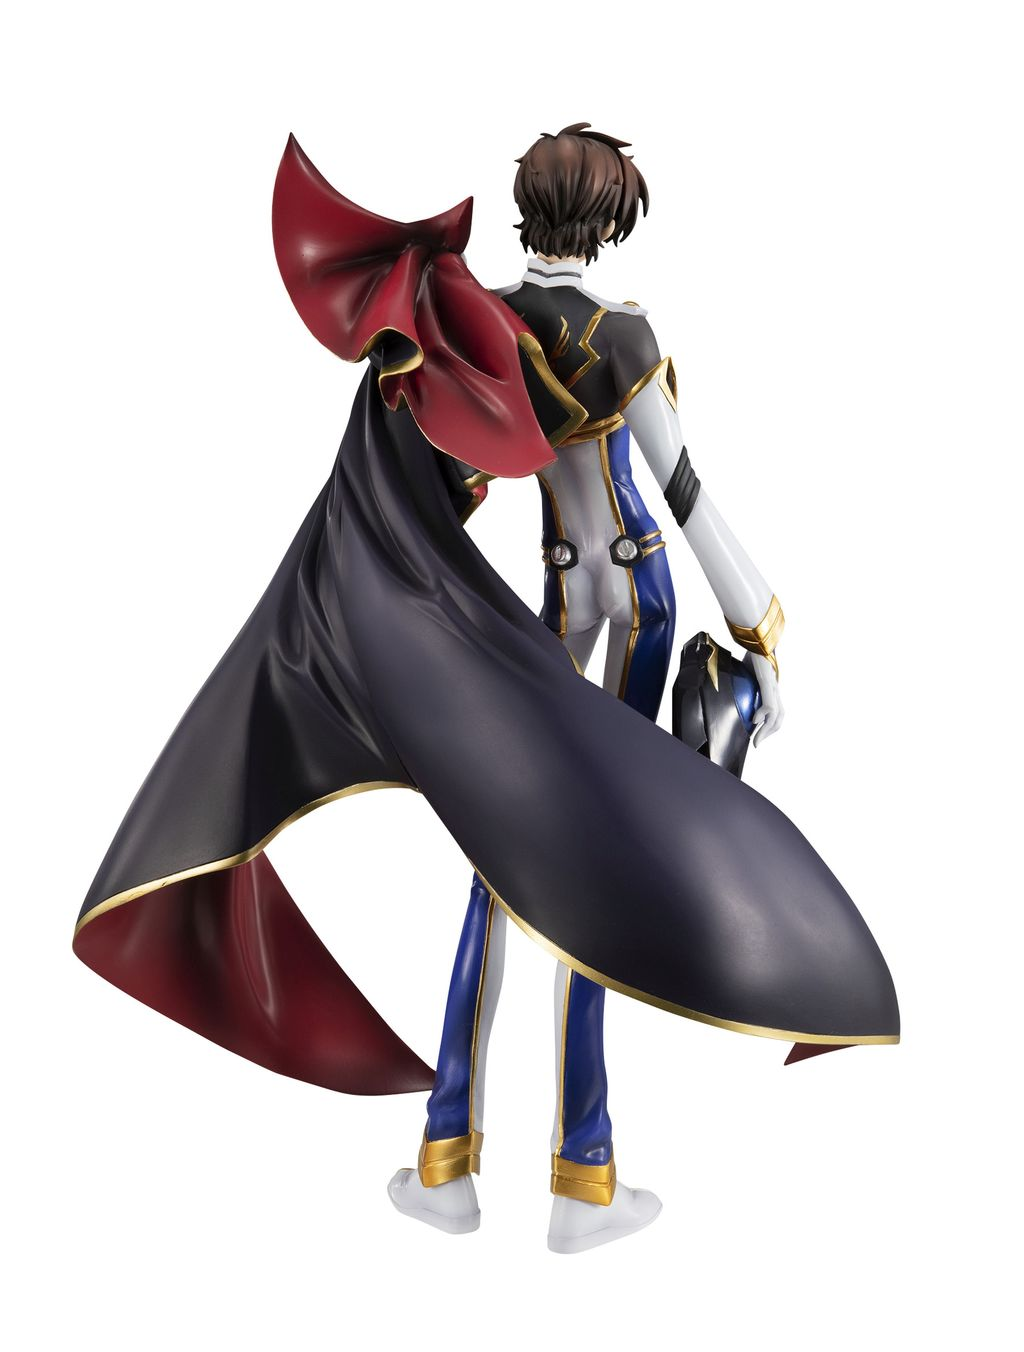 G.E.M. Series: Code Geass: Lelouch of the Re;surrection Suzaku Kururugi Pilot Ver. Back